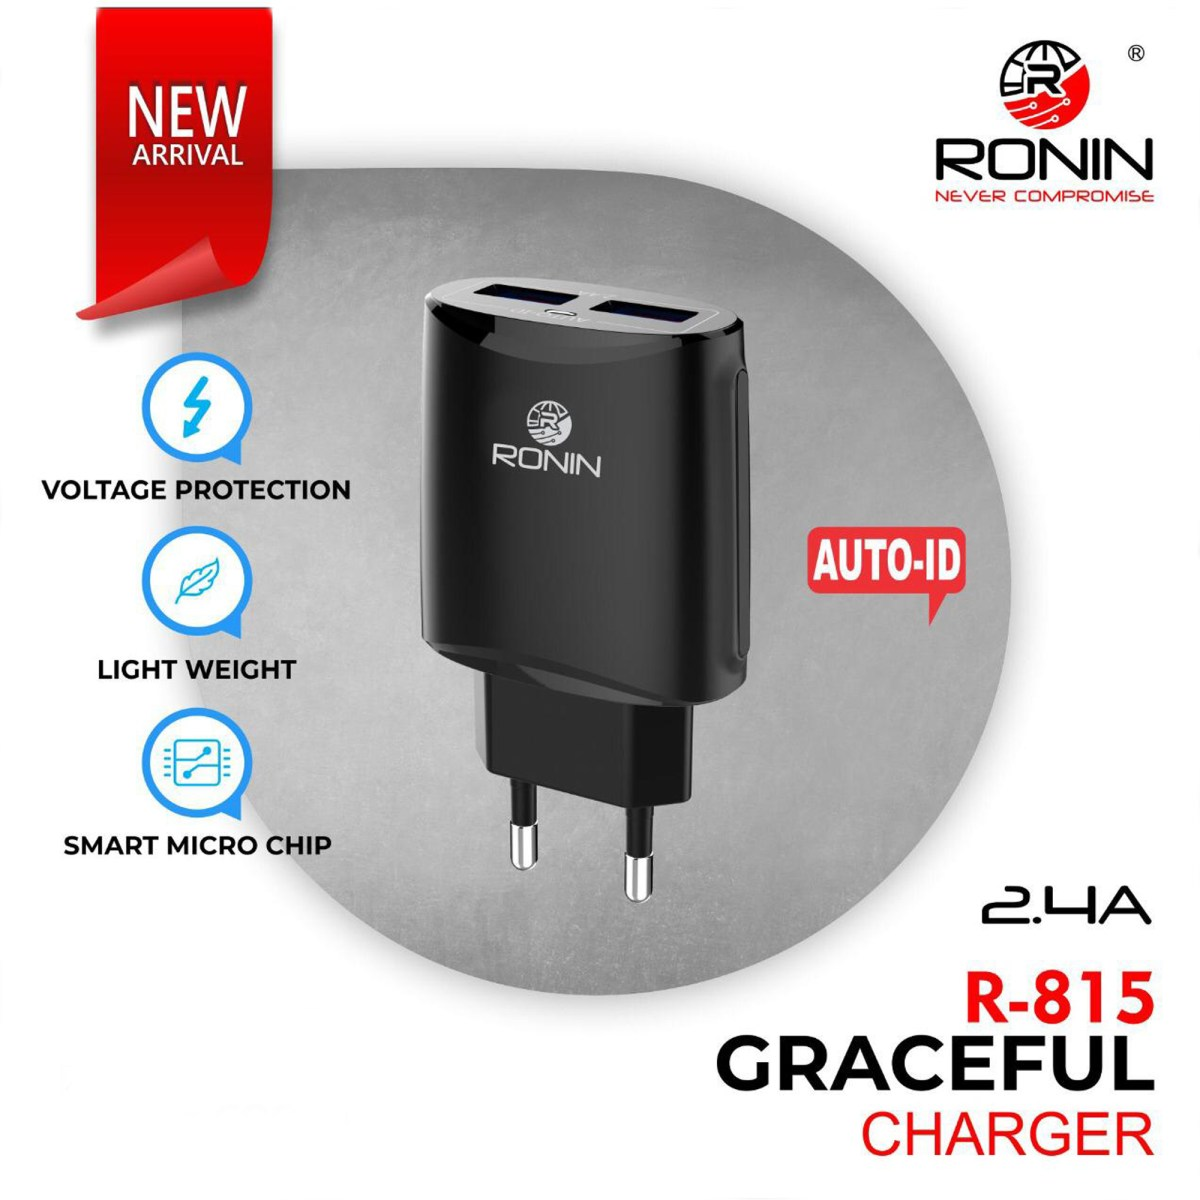 Original 2.4A Ronin Graceful Charger R-815-X3E35